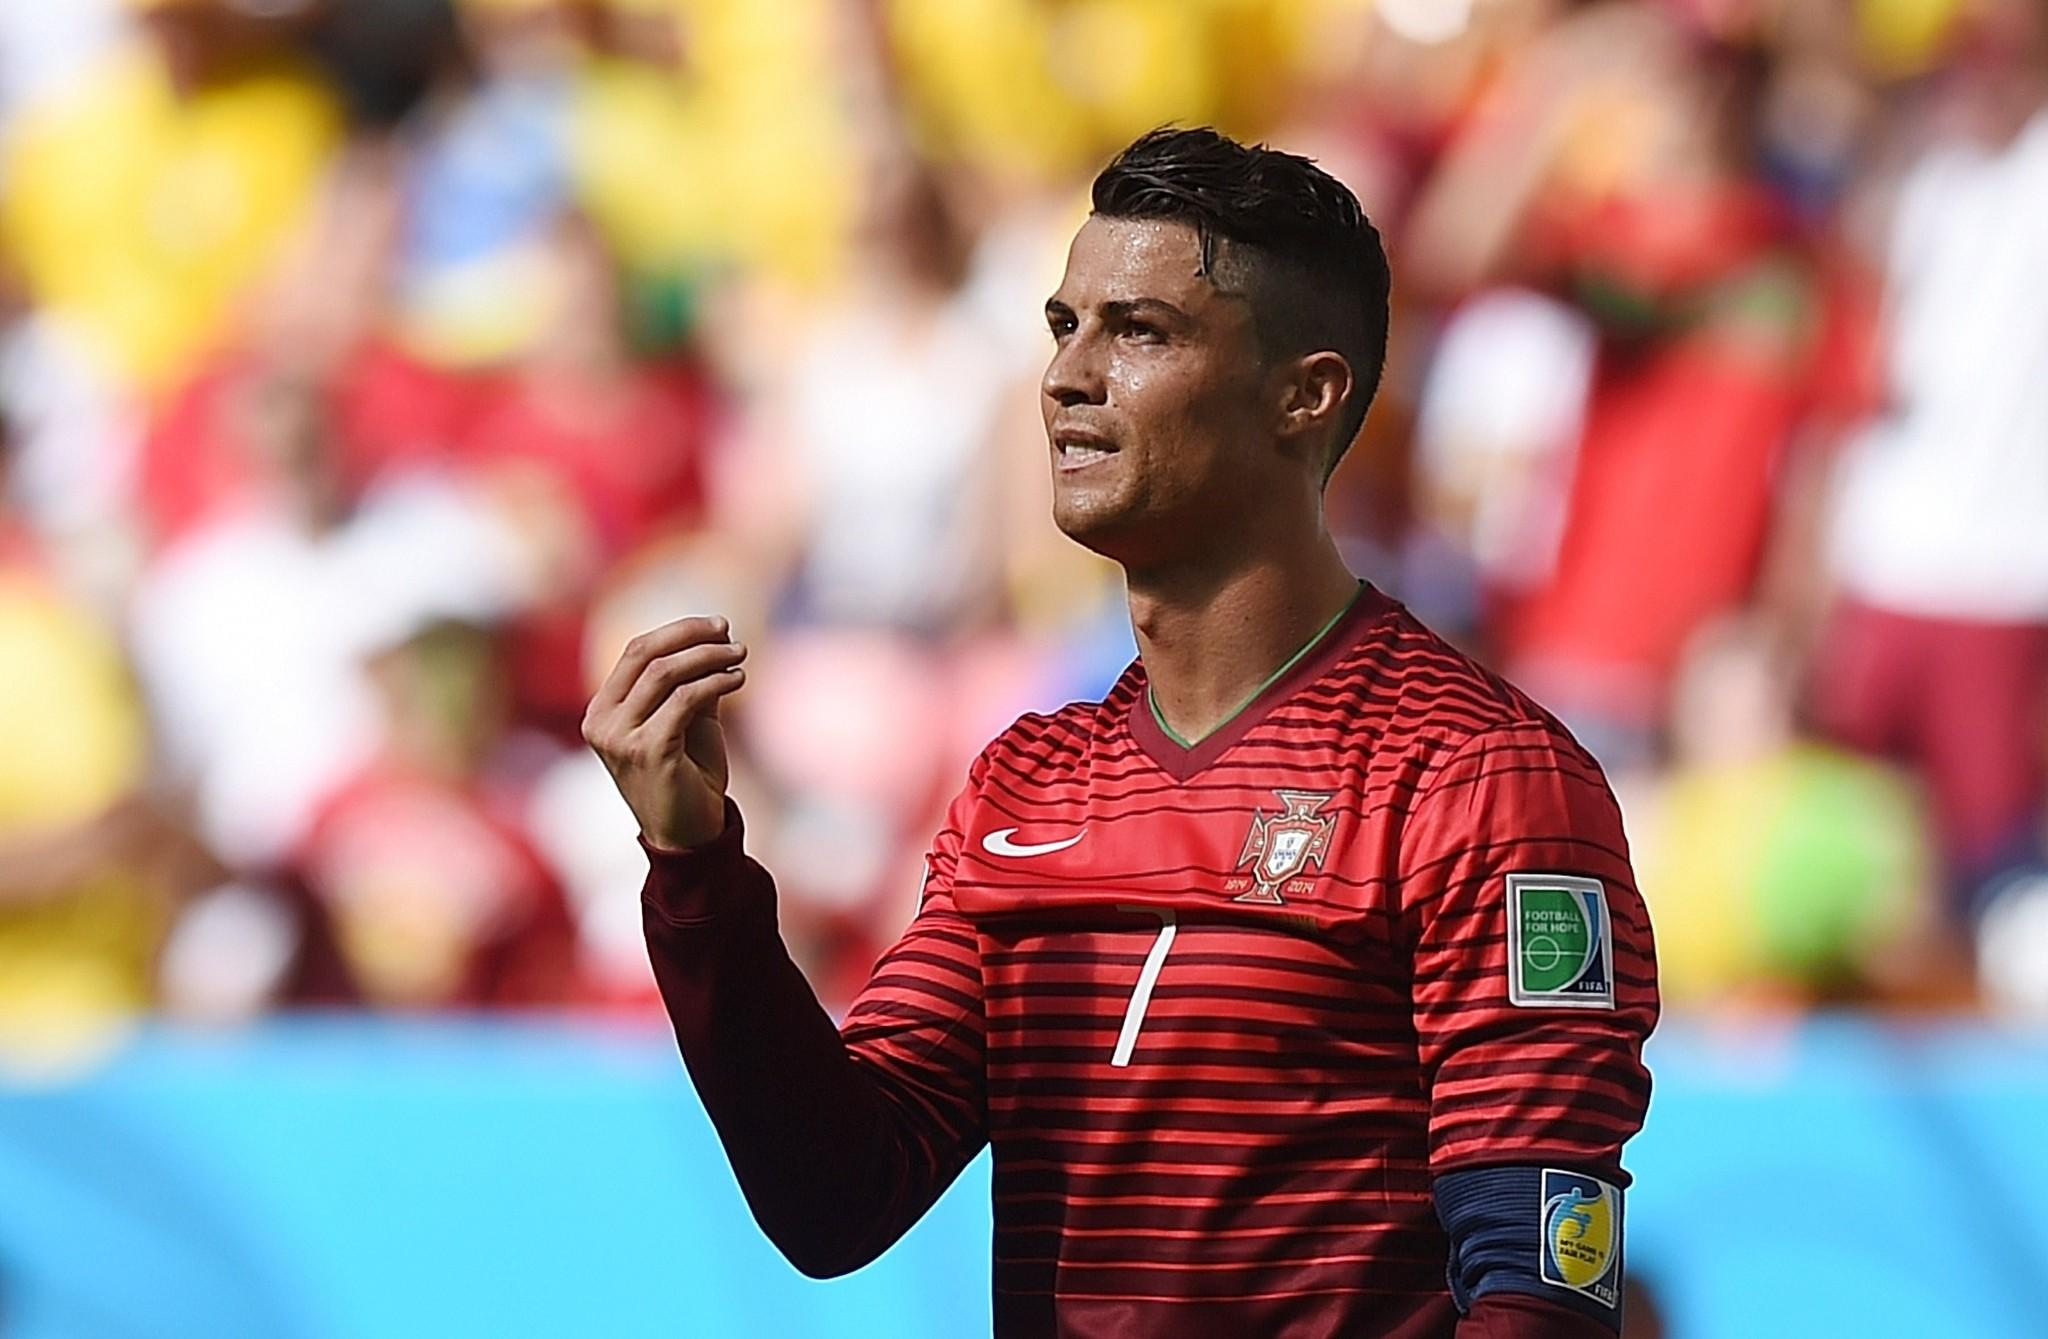 Portugal's forward and captain Cristiano Ronaldo reacts during the Group G match between Portugal and Ghana.